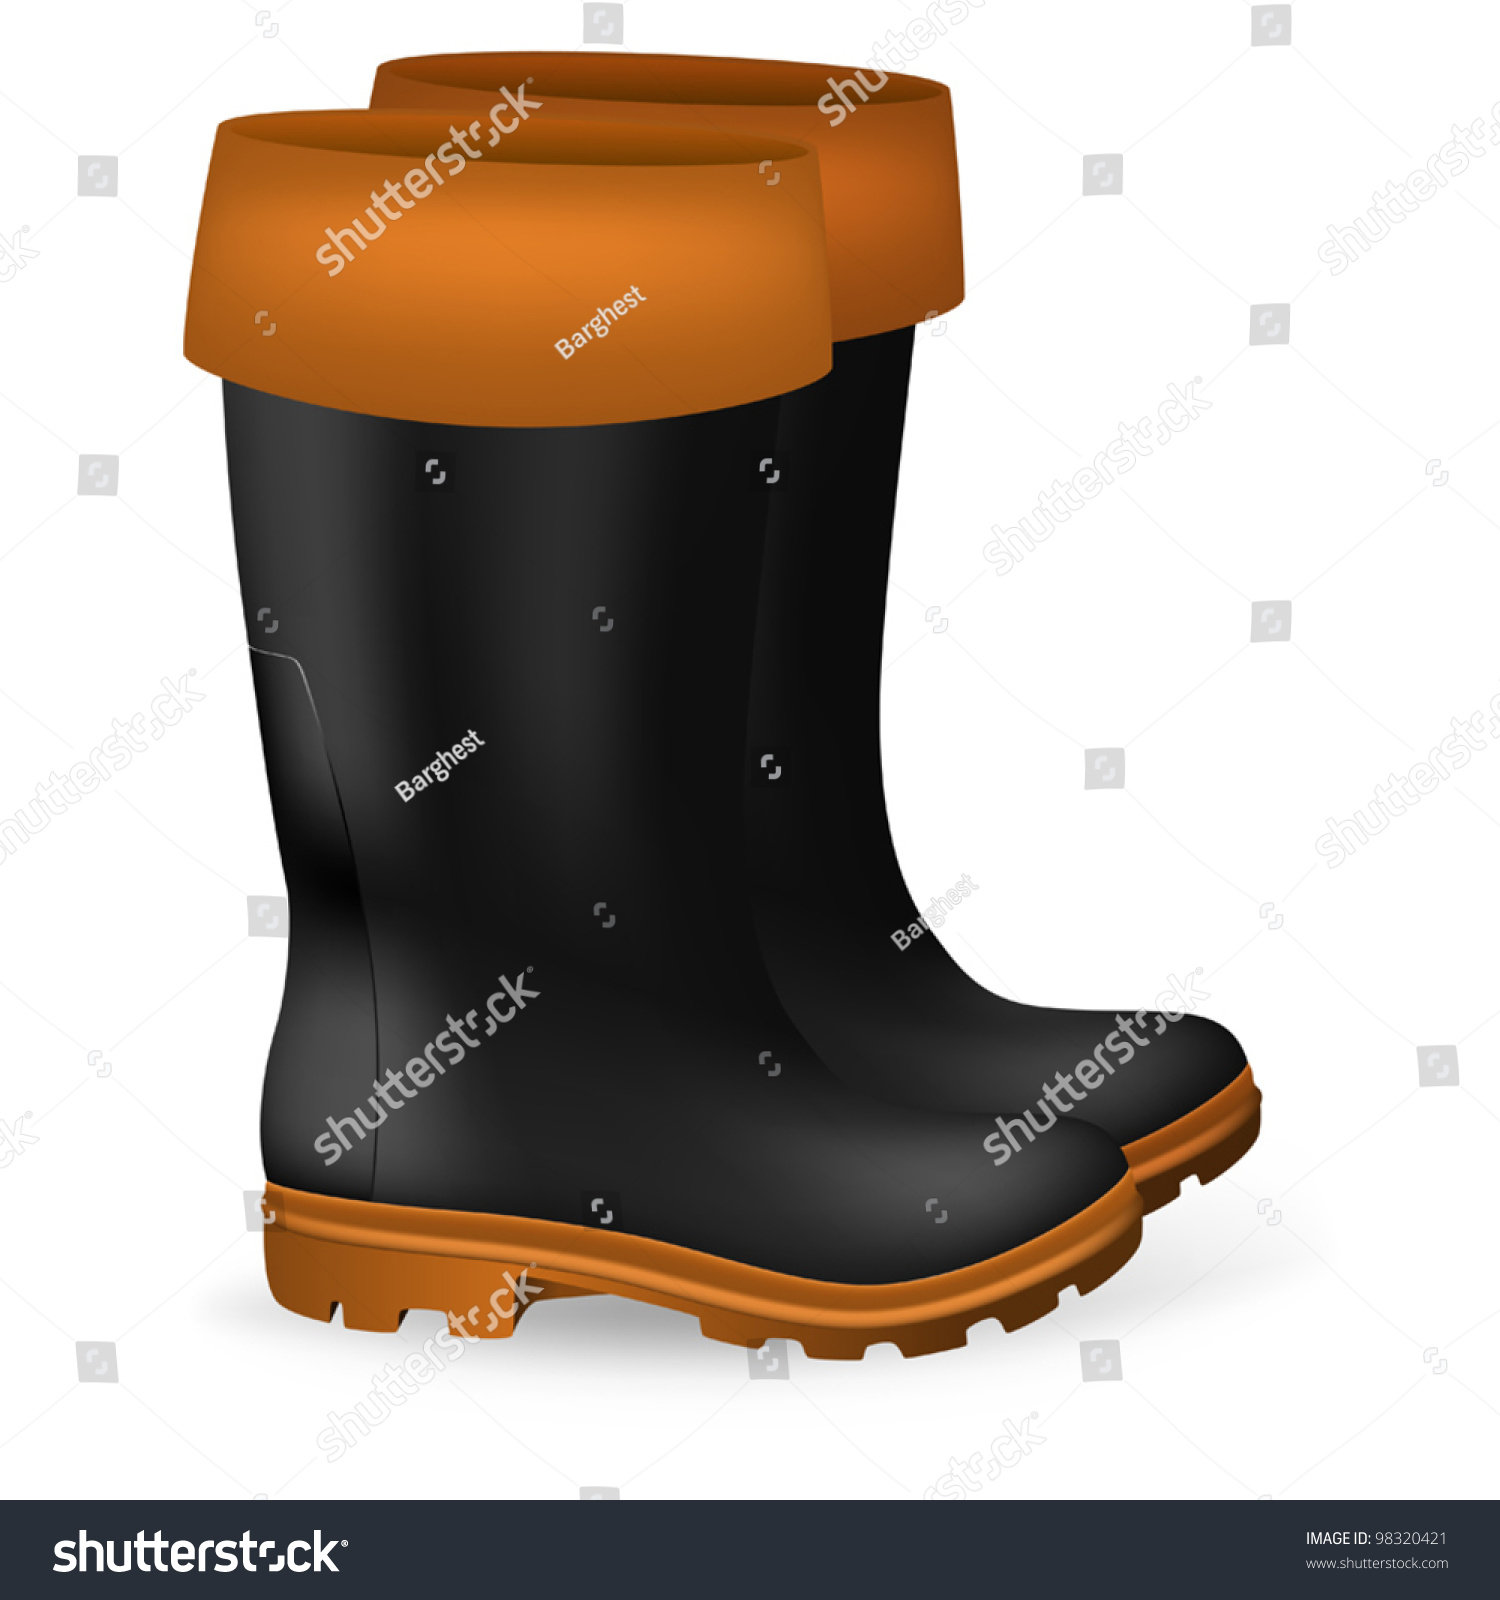 Blank safety rubber boots template stock vector 98320421 shutterstock blank safety rubber boots template maxwellsz